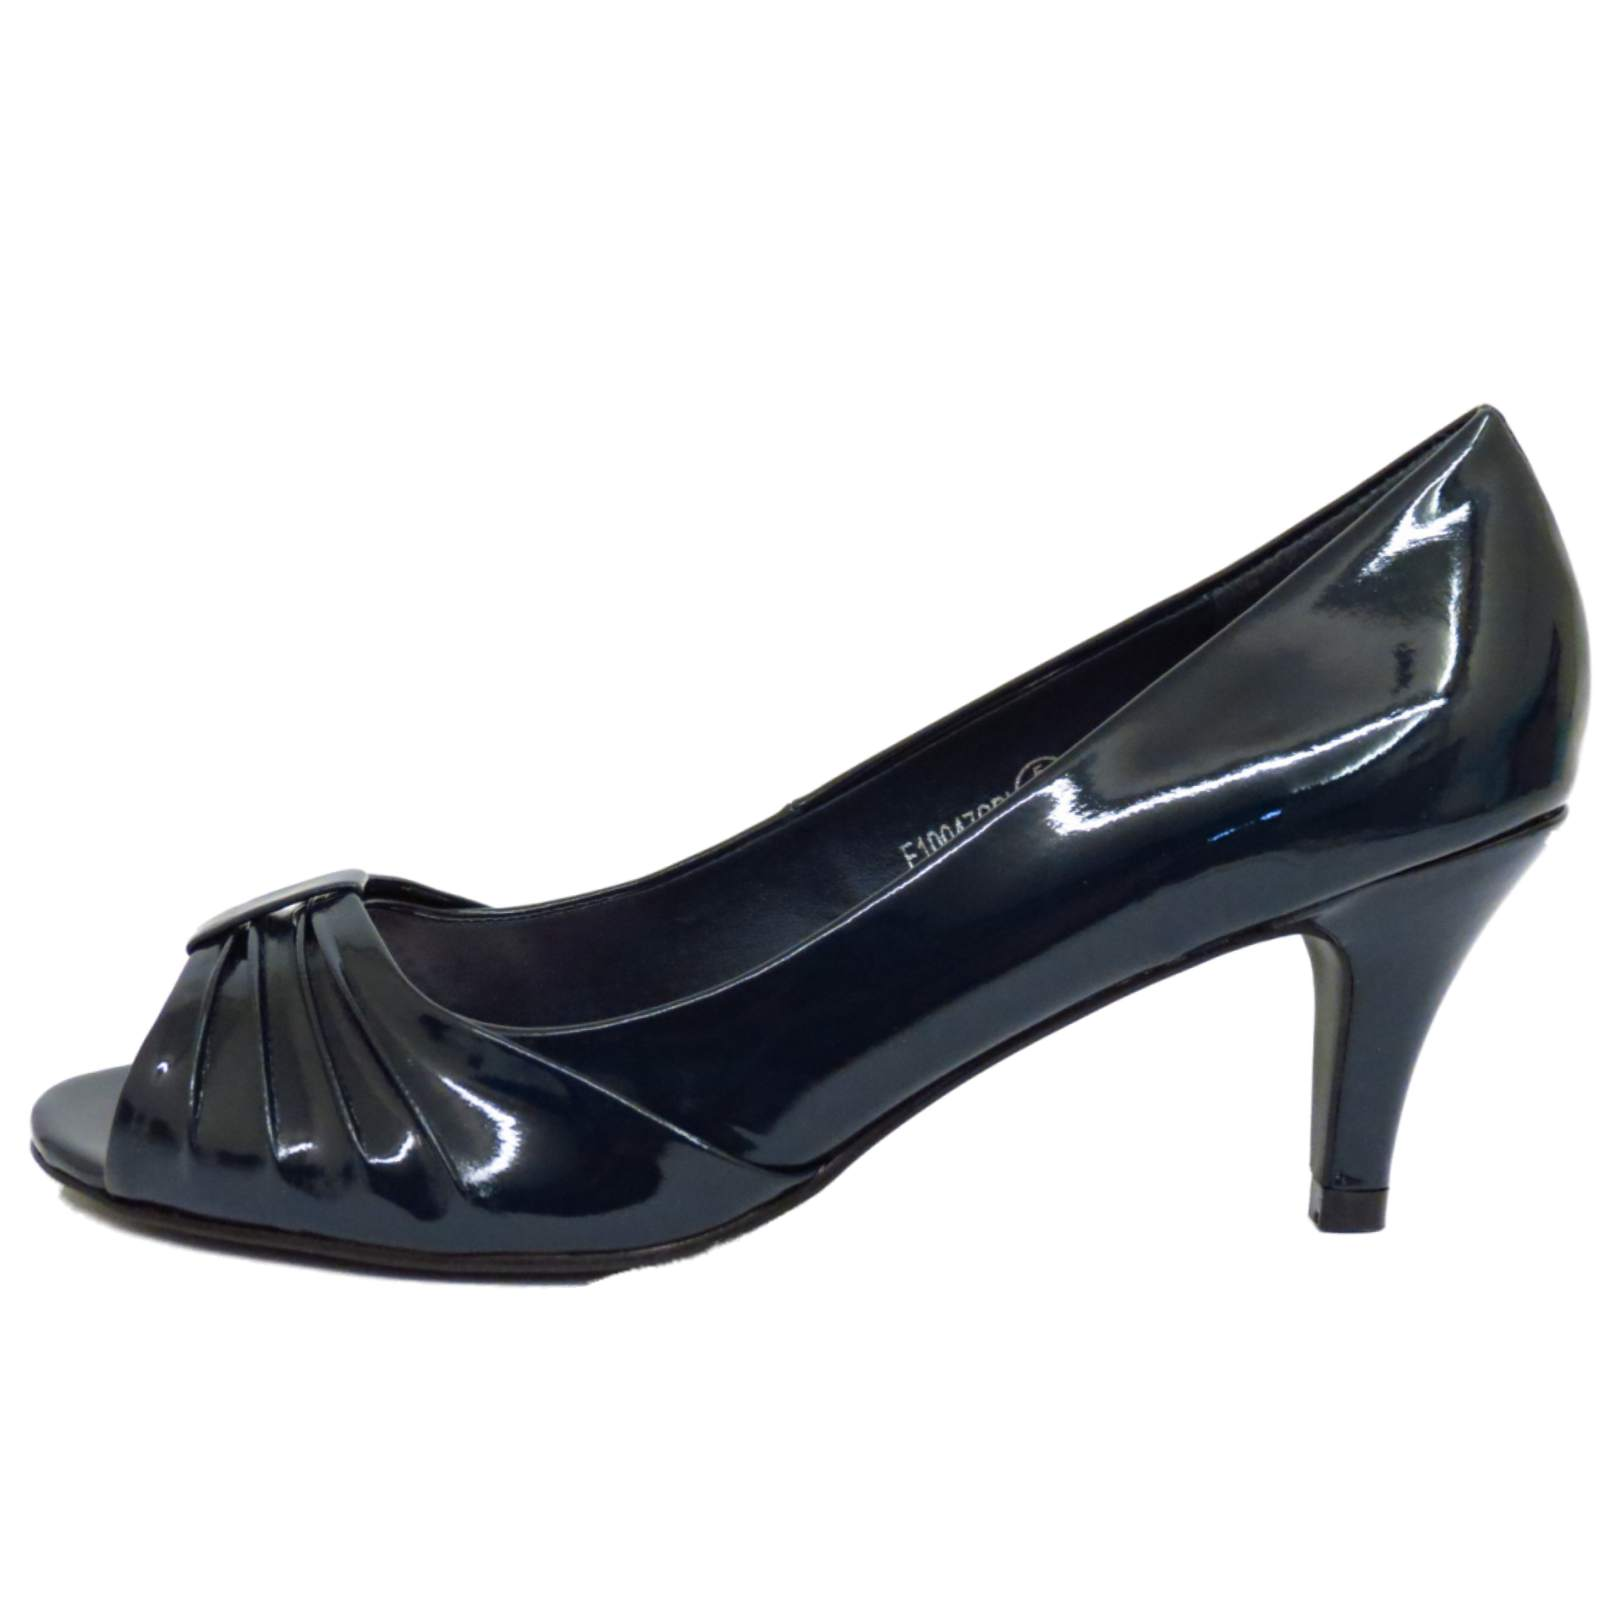 navy patent peep toe slip on mid heel smart court